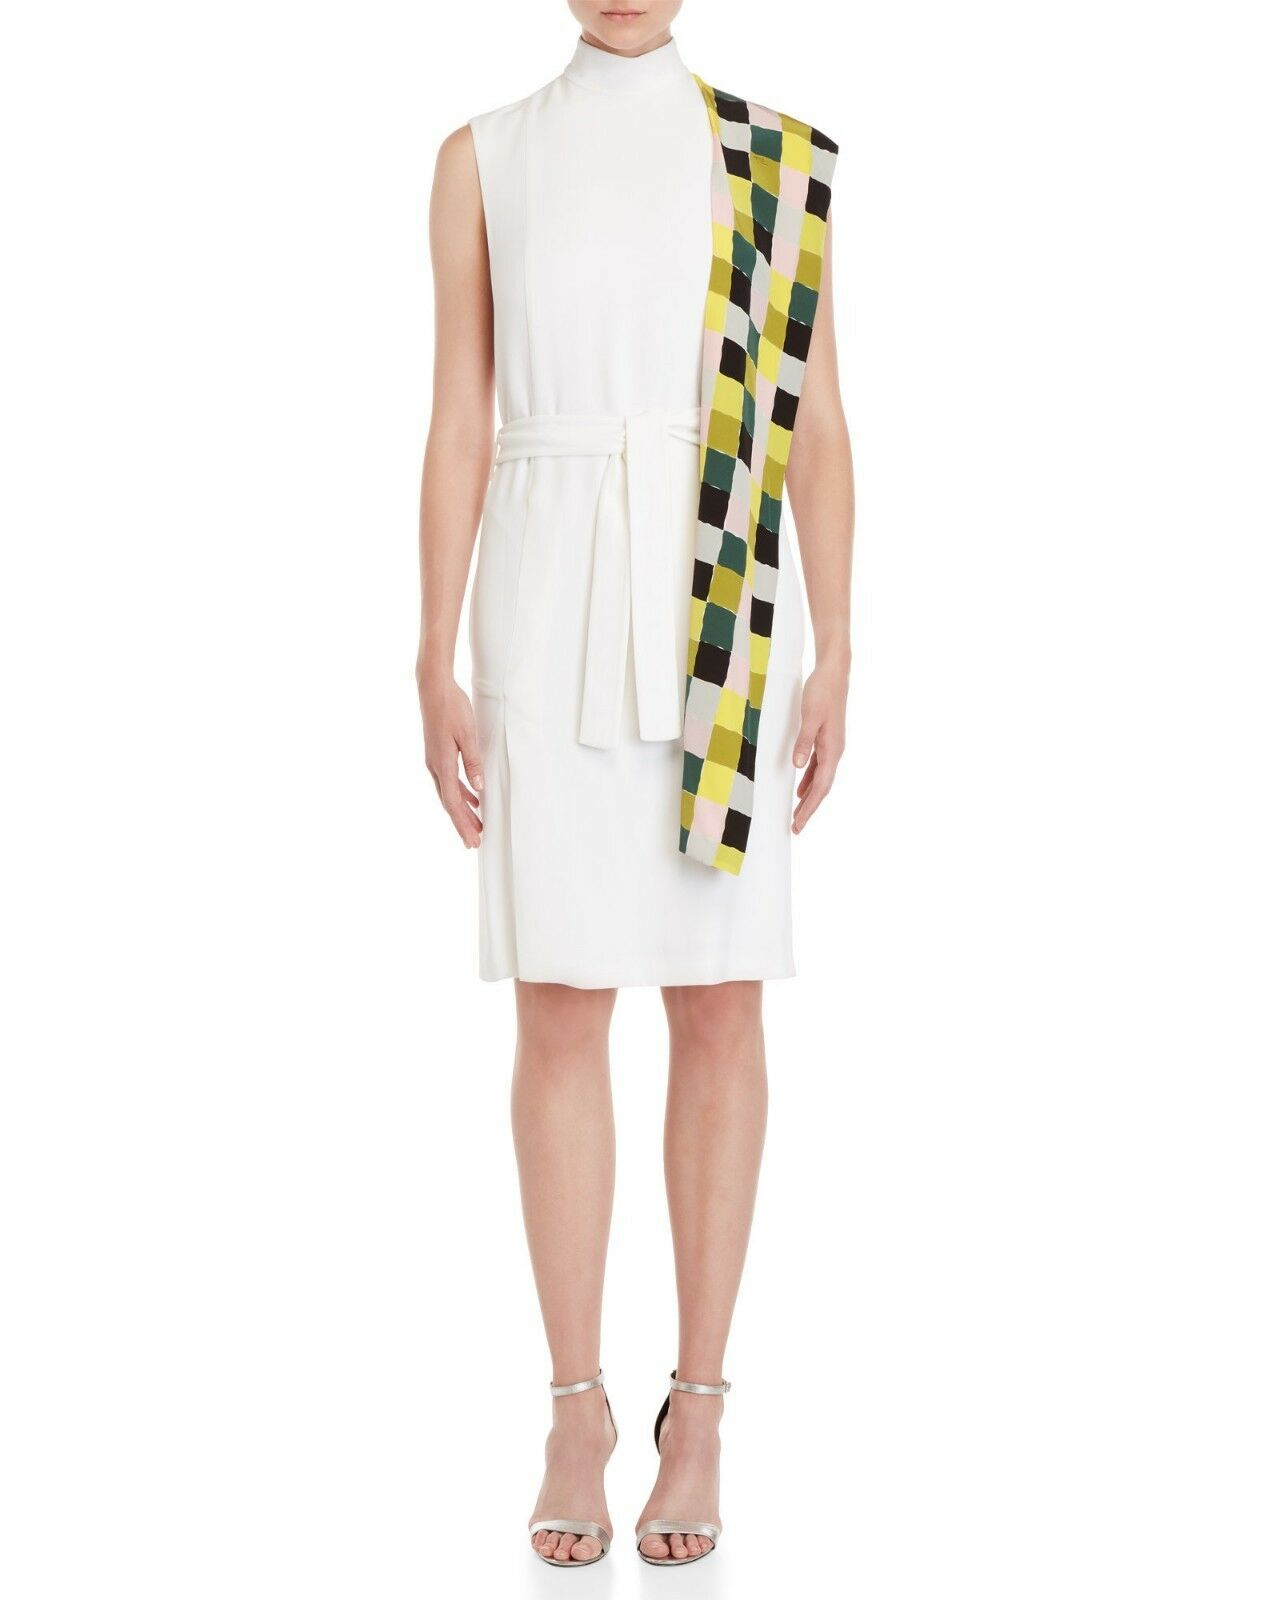 New Designer EMILIO PUCCI Ladies White Sleeveless Dress w Plaid Scarf  46 ITALY